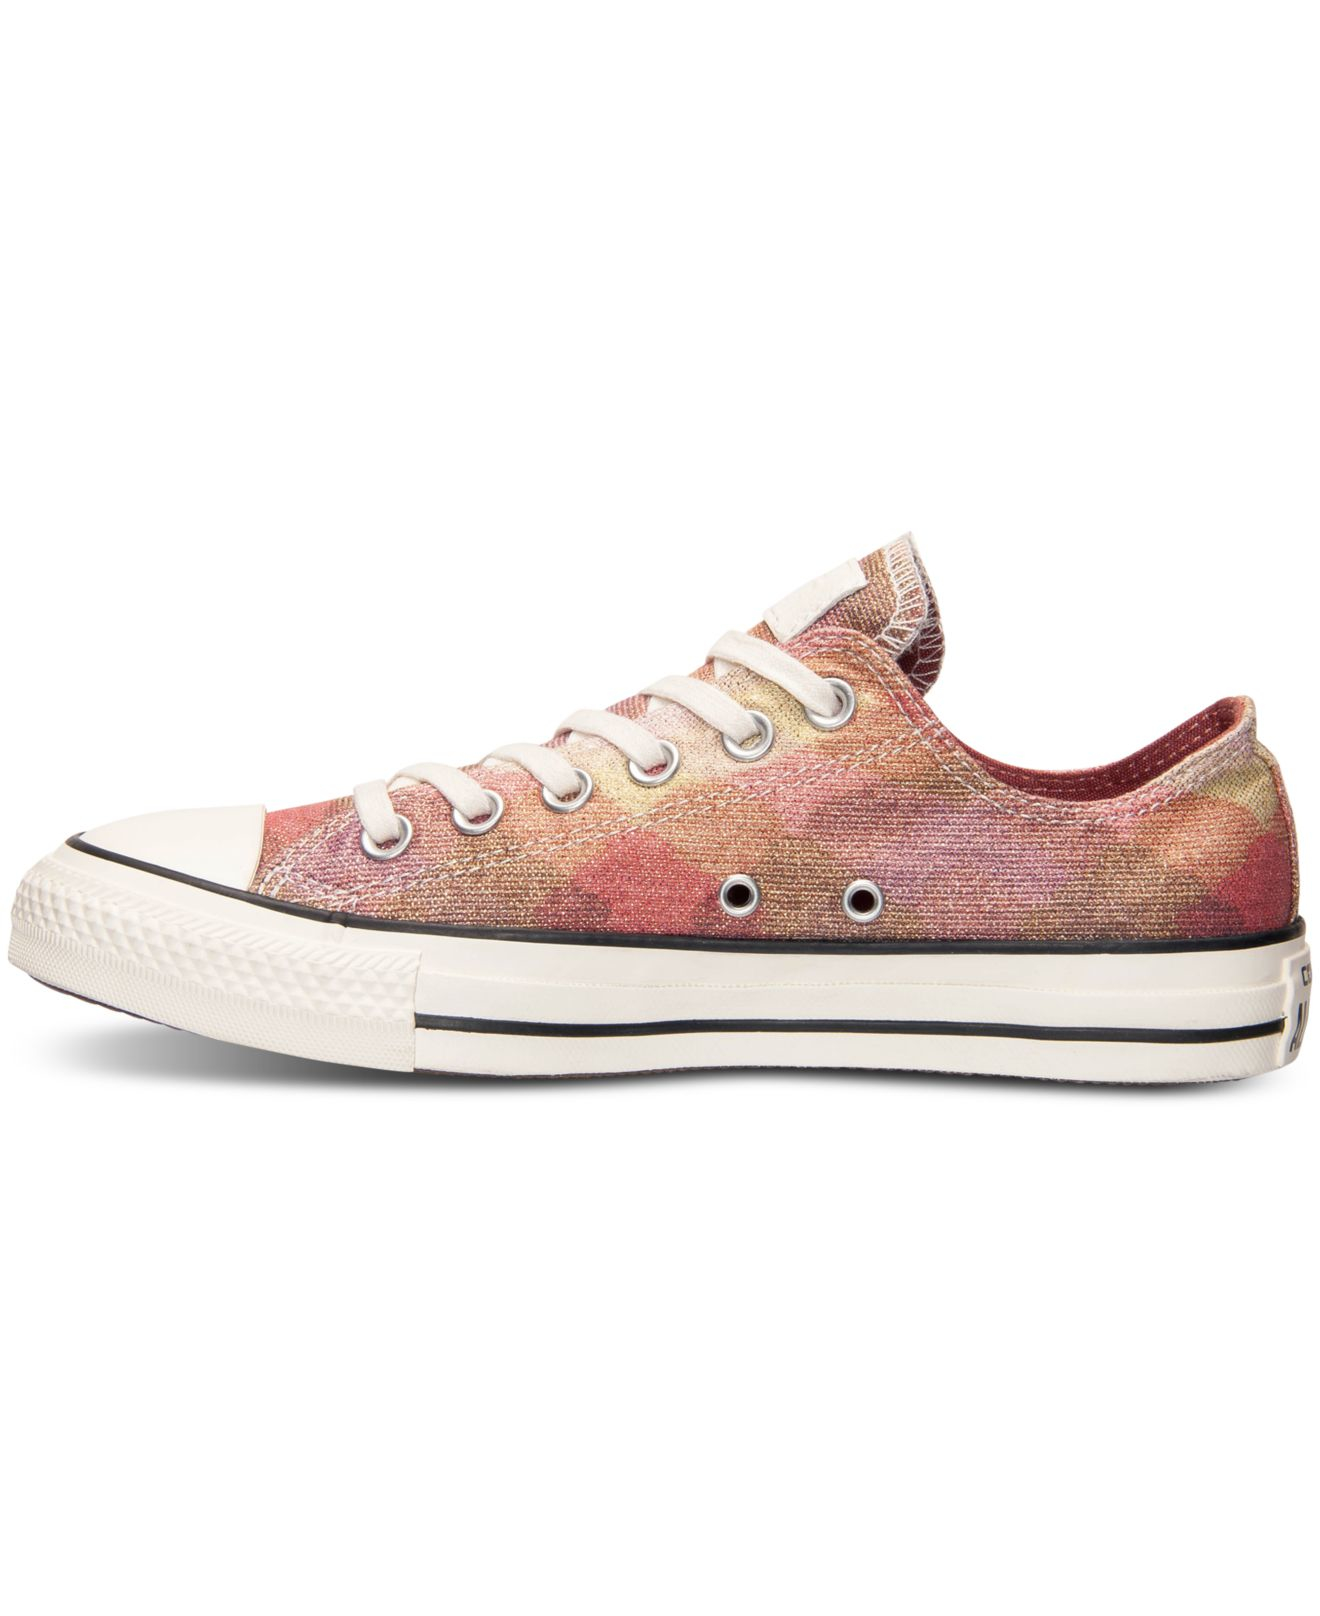 Lyst - Converse Unisex Chuck Taylor All Star Fancy Missoni Casual ... 4667d3acd